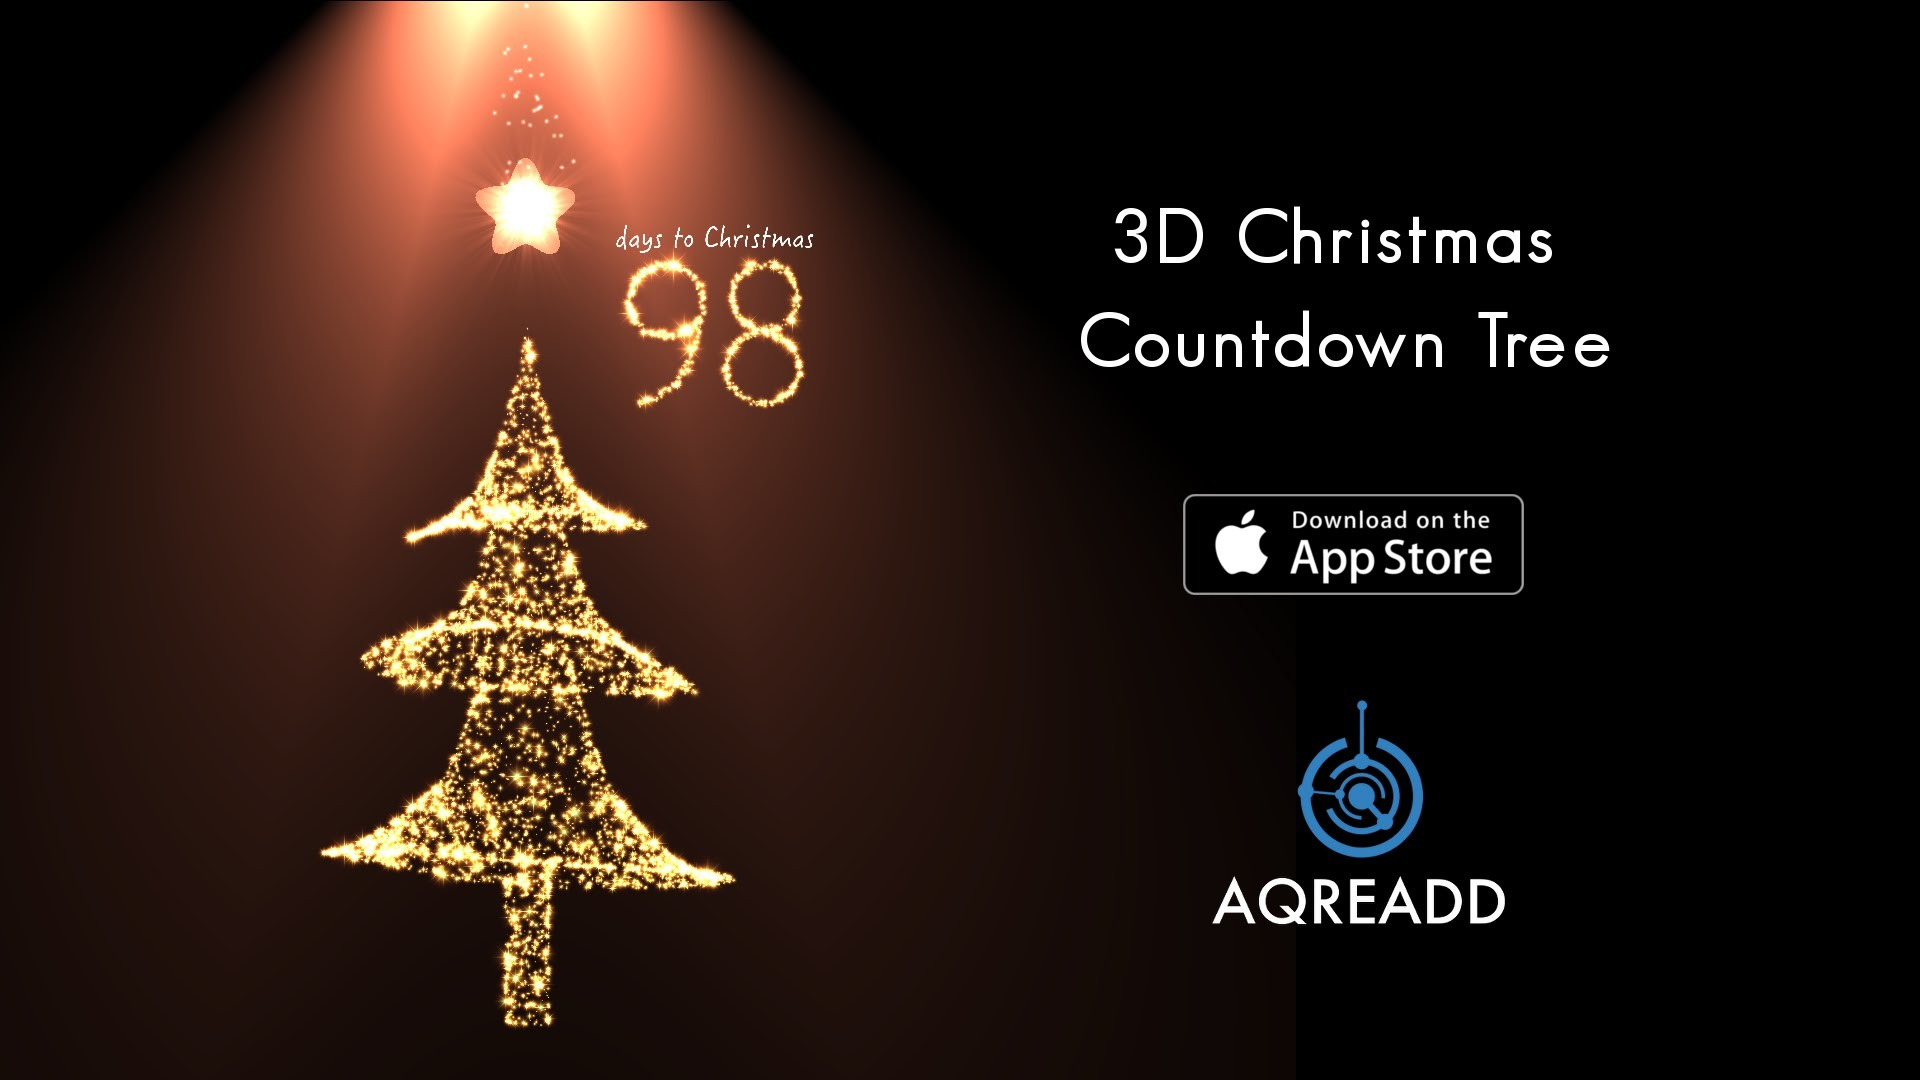 Christmas For Iphone Wallpaper: Days Till Christmas Wallpaper (44+ Images